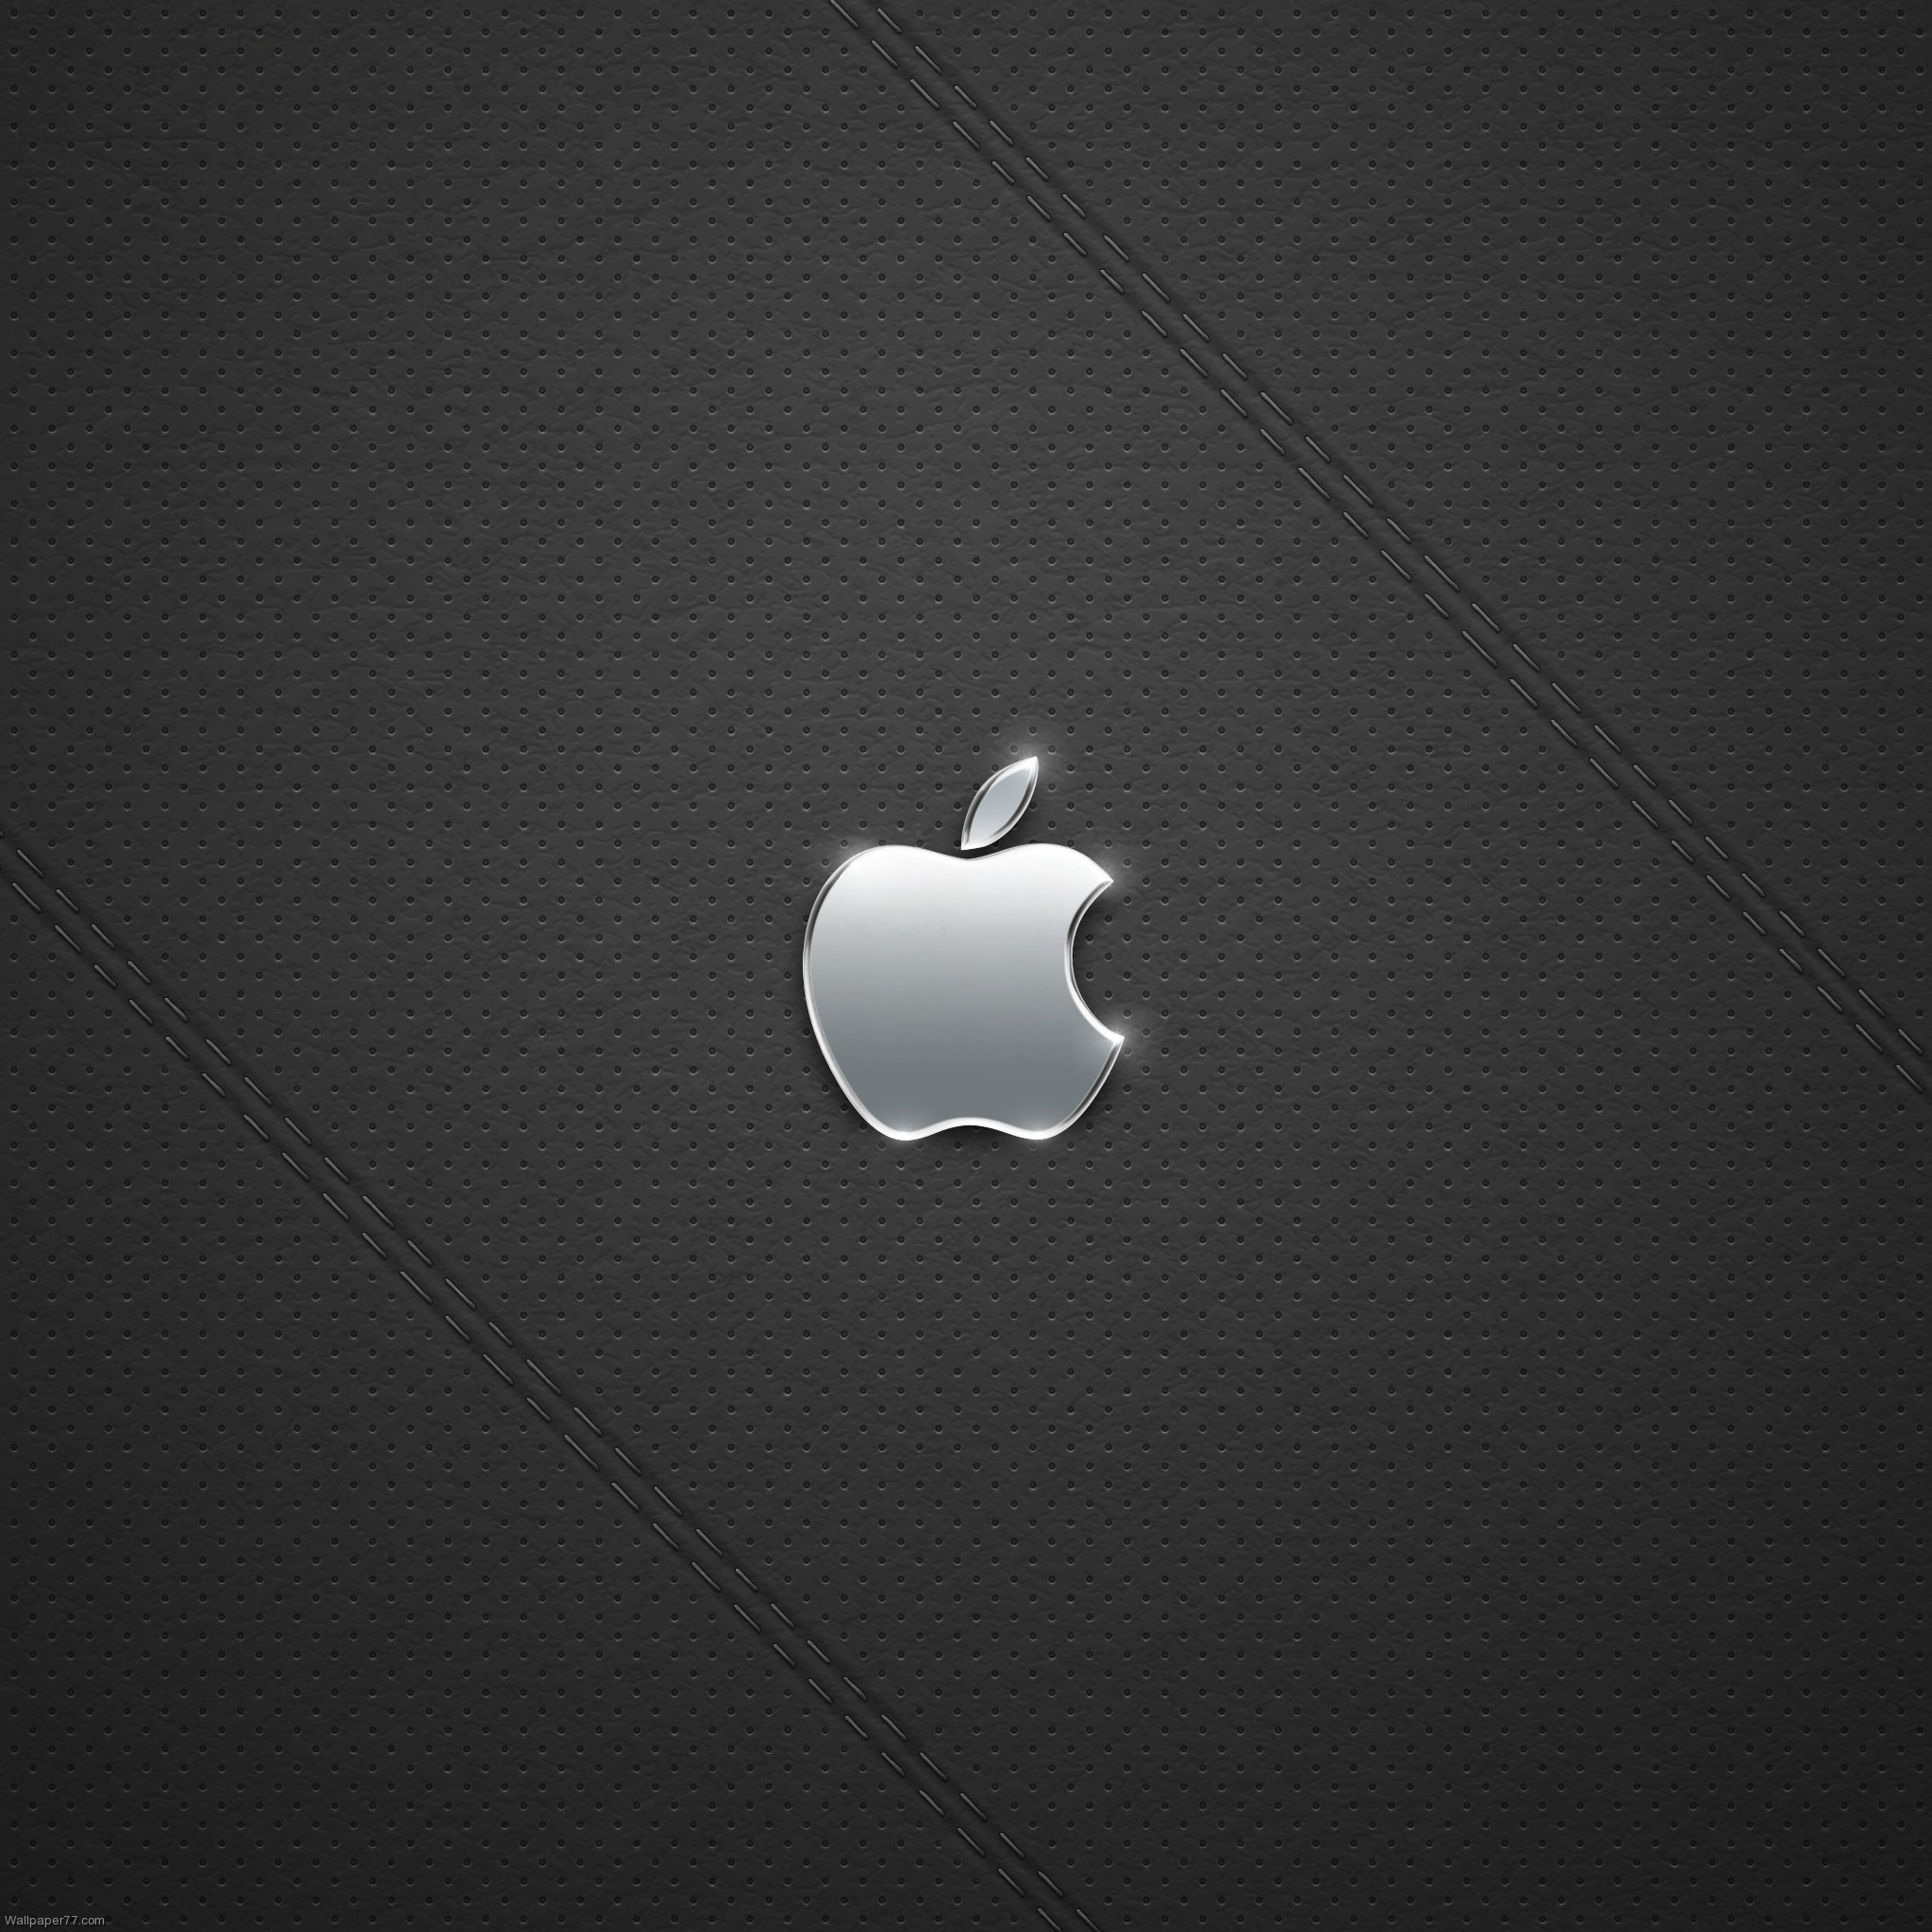 Koleksi Apple Wallpaper 2048 X 2048 | Wallpaper Dilan destiné Fonds D'?Cran